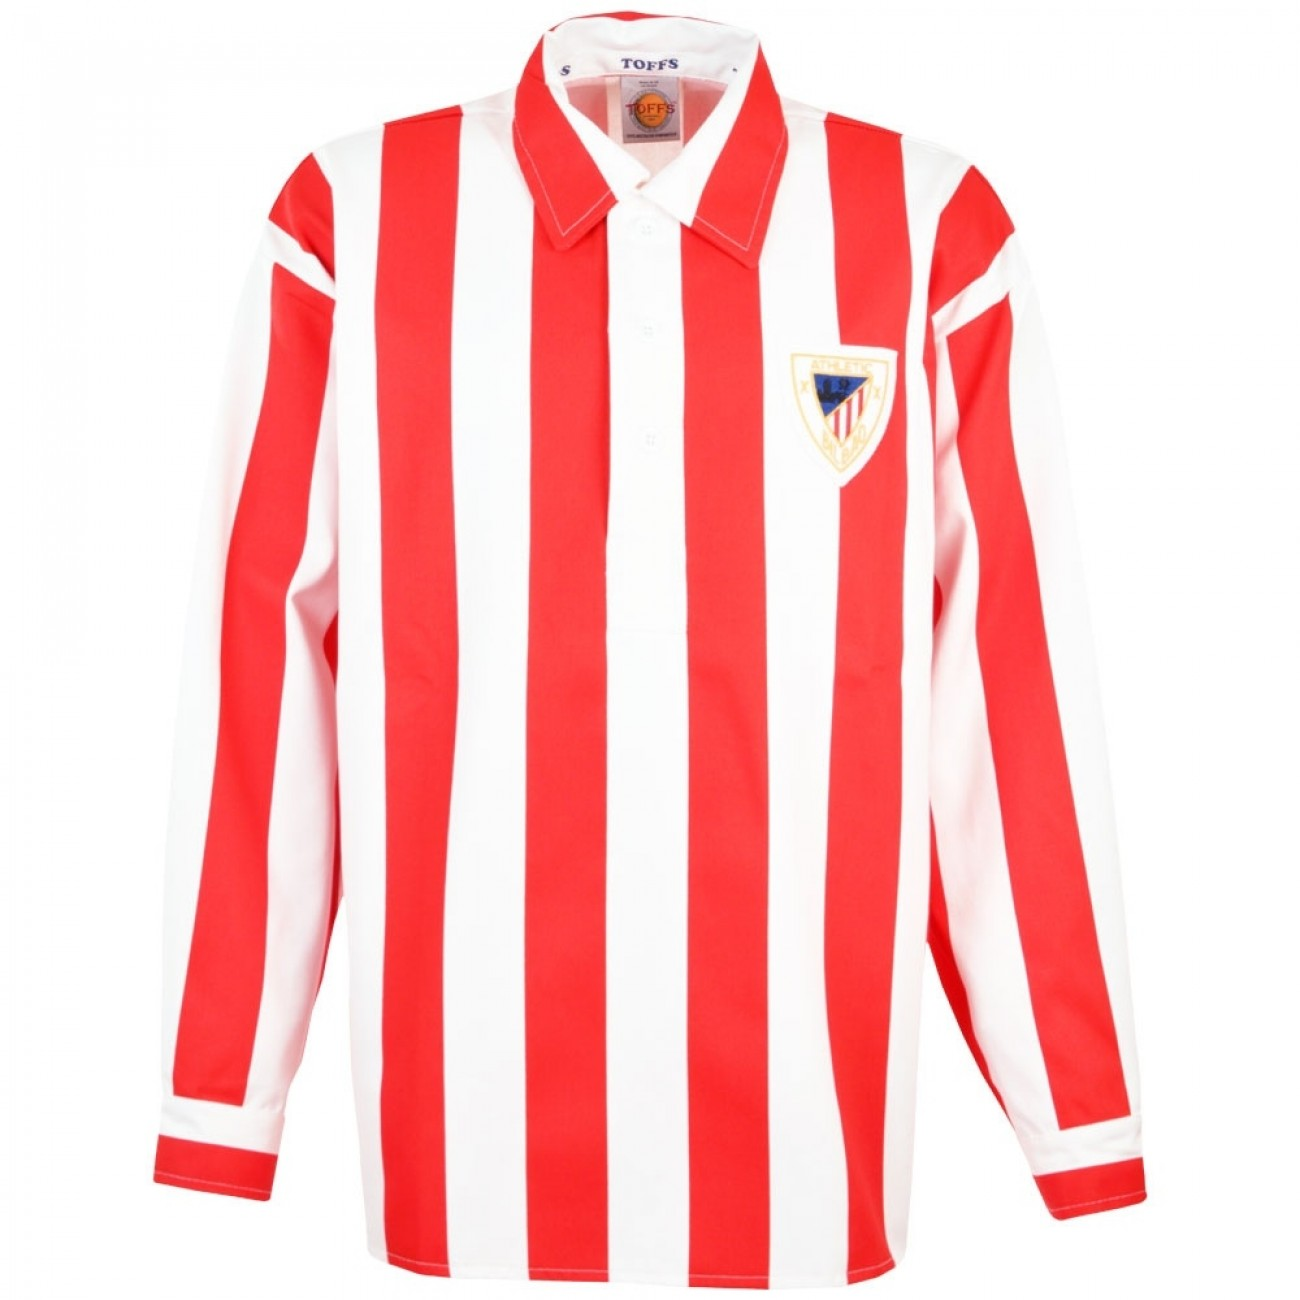 66972943ebbb1 Camiseta retro Athletic Club Bilbao